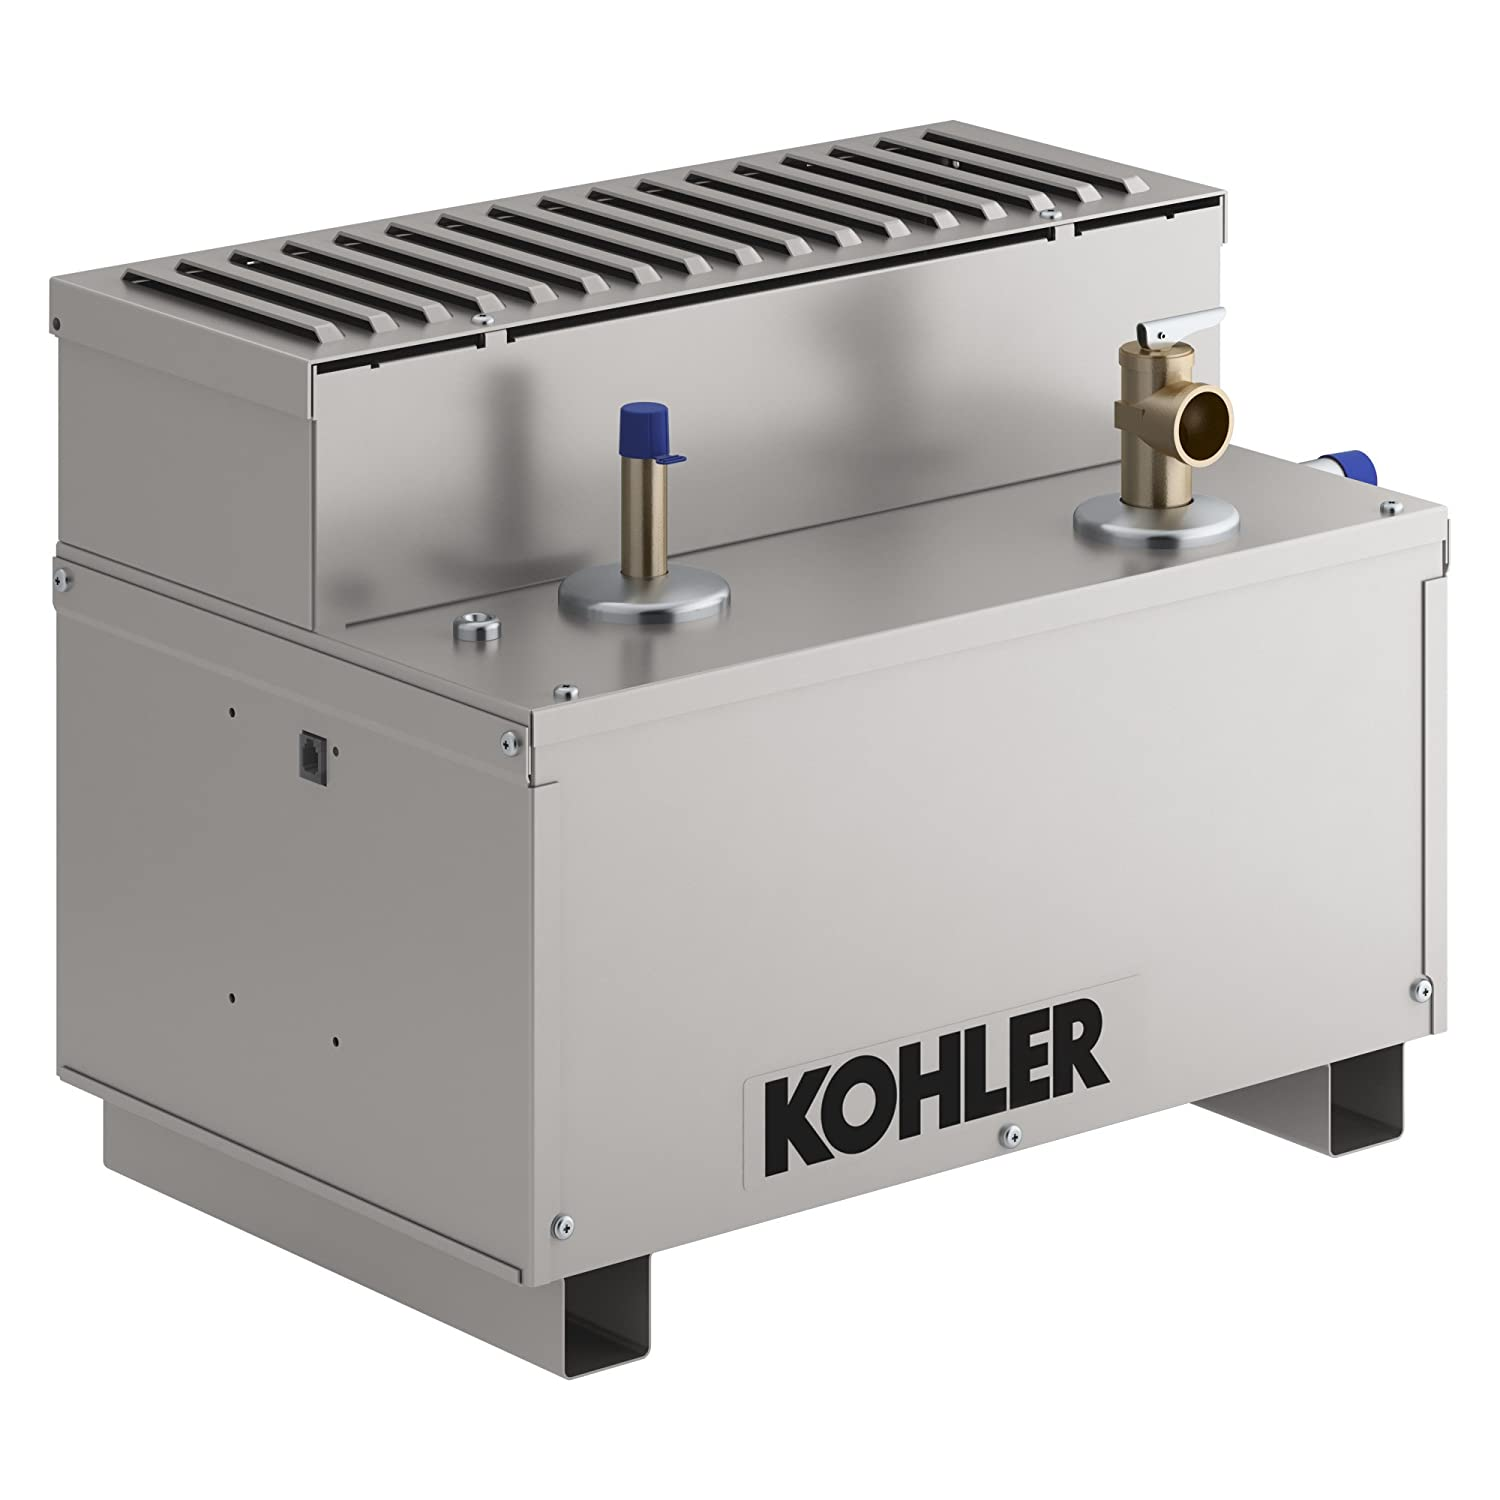 KOHLER K 5535 NA Invigoration Series Steam Generator 15 kW